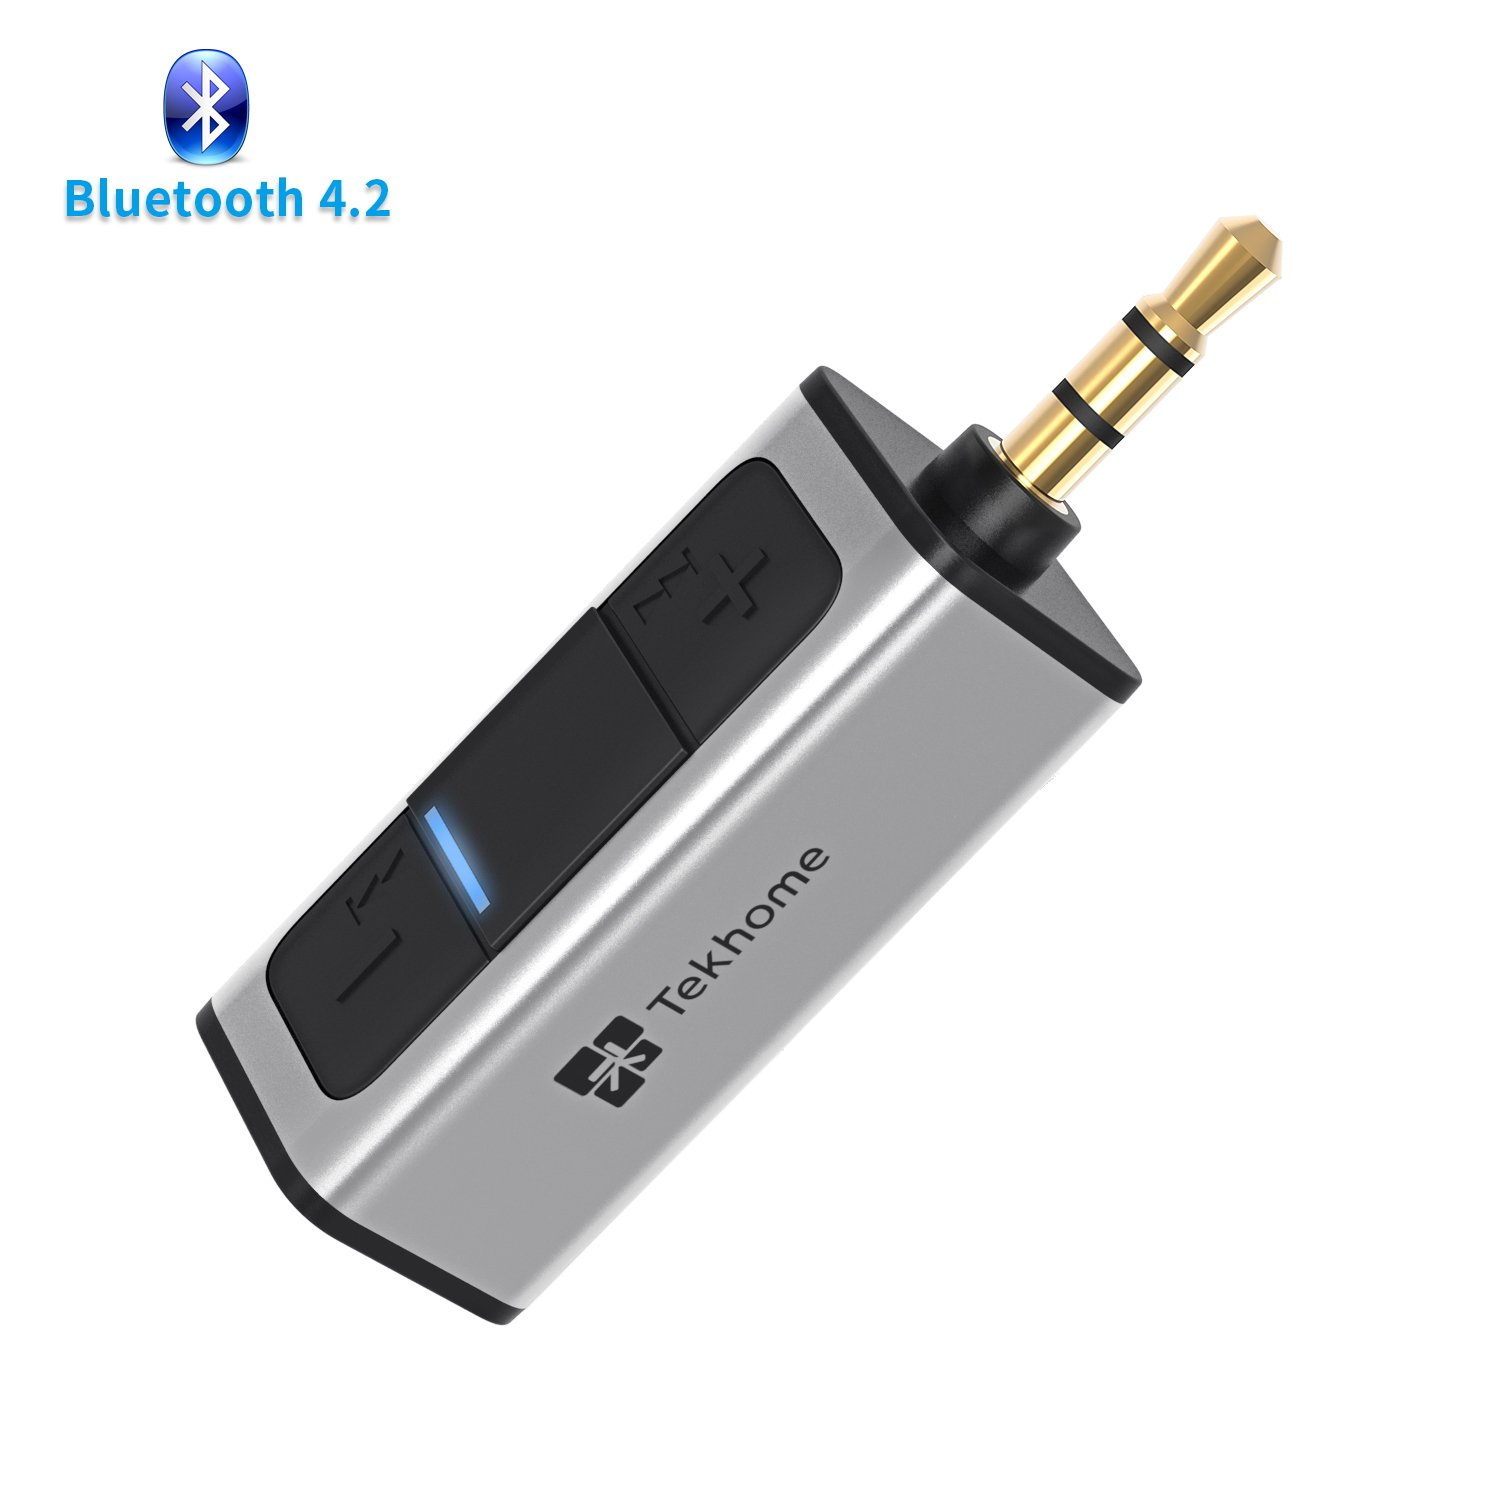 TekHome Bluetooth Receiver, Portable Bluetooth 4.2 Car Adapter & Bluetooth Car Aux Adapter for Music Streaming Sound System, Hands-free Audio Adapter & Wireless Car Kits for Home Audio Stereo System.